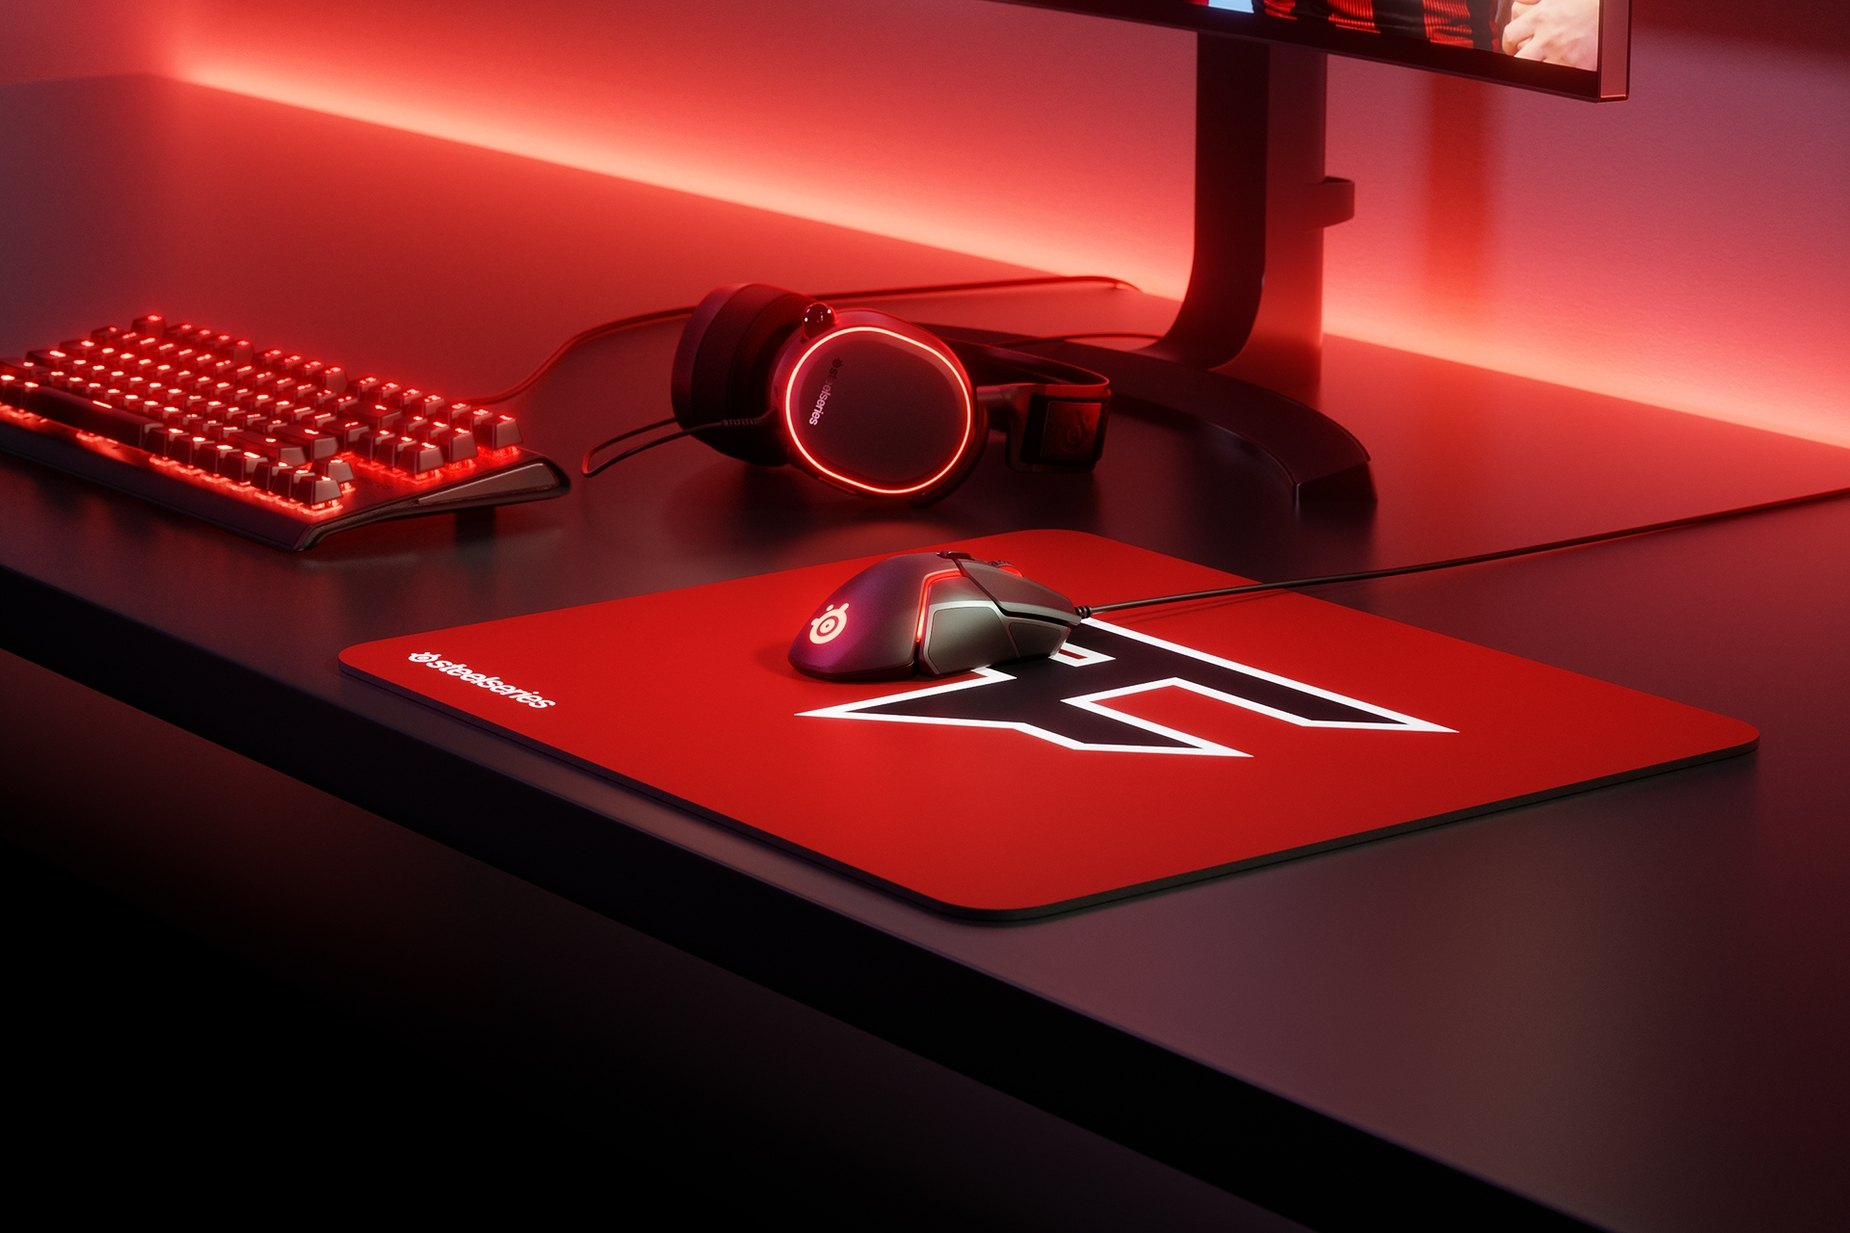 QcK Faze clan edition on desk with mouse, keyboard, and monitor